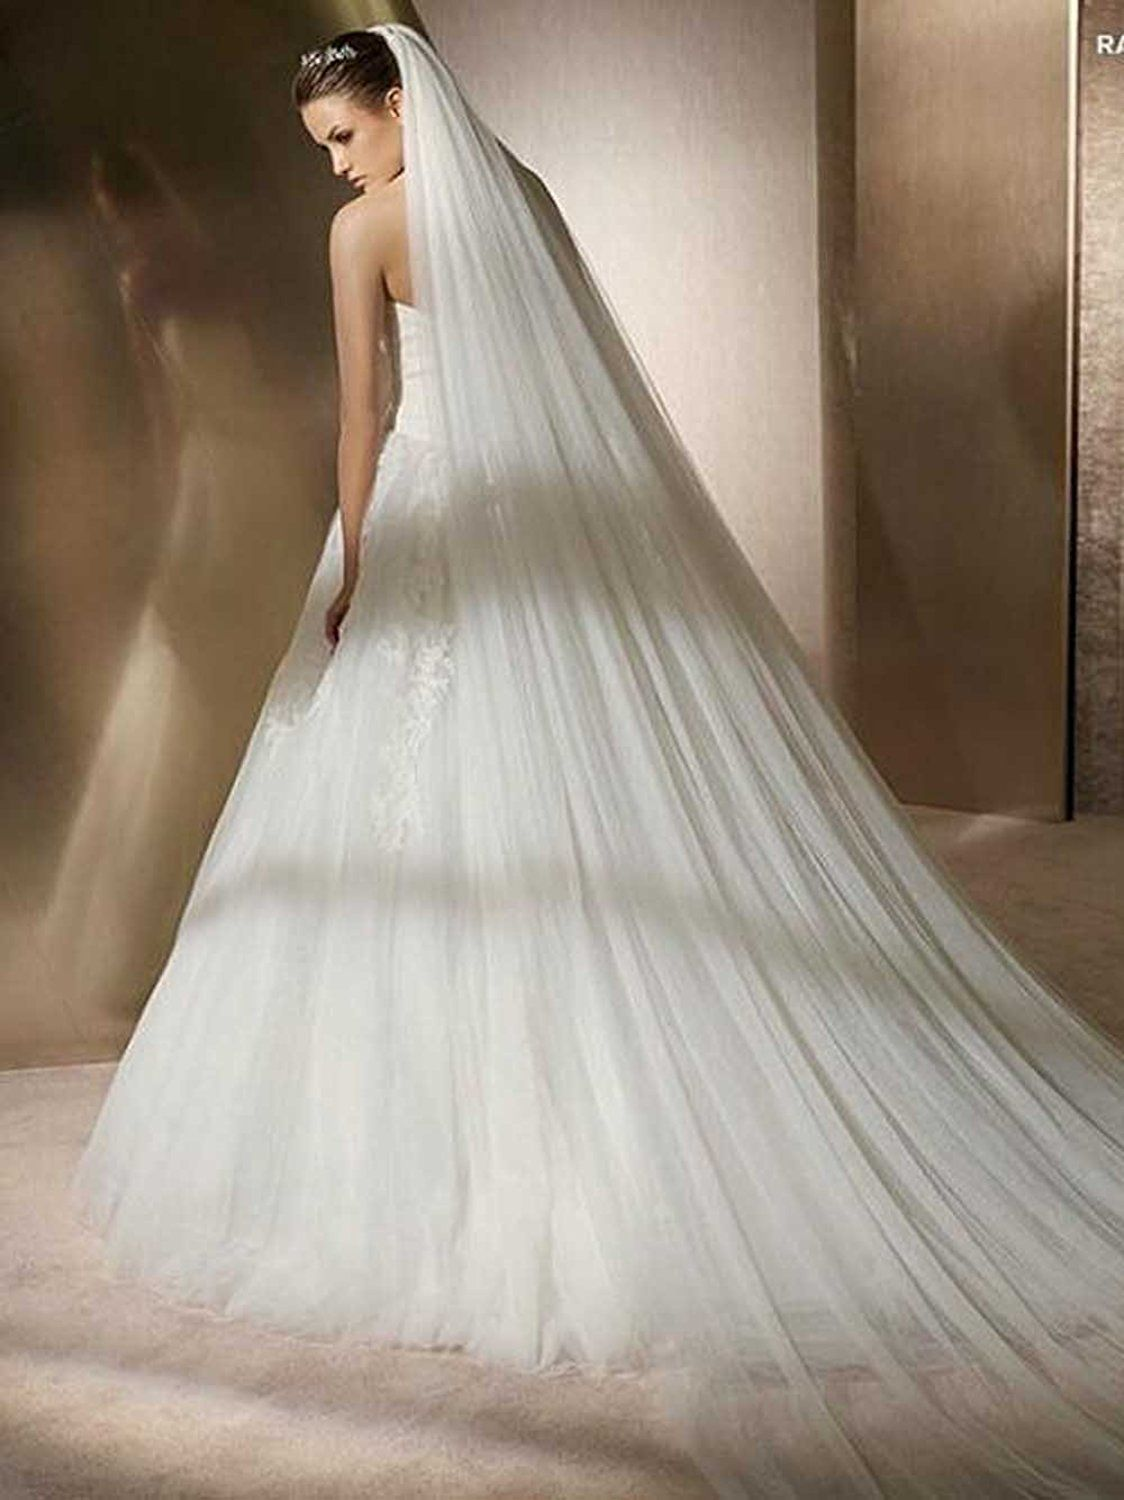 3 Meters Cathedral Ivory Wedding Bridal Veils Long Single Veil With Comb White Elegant Accessories Cheap In Stock